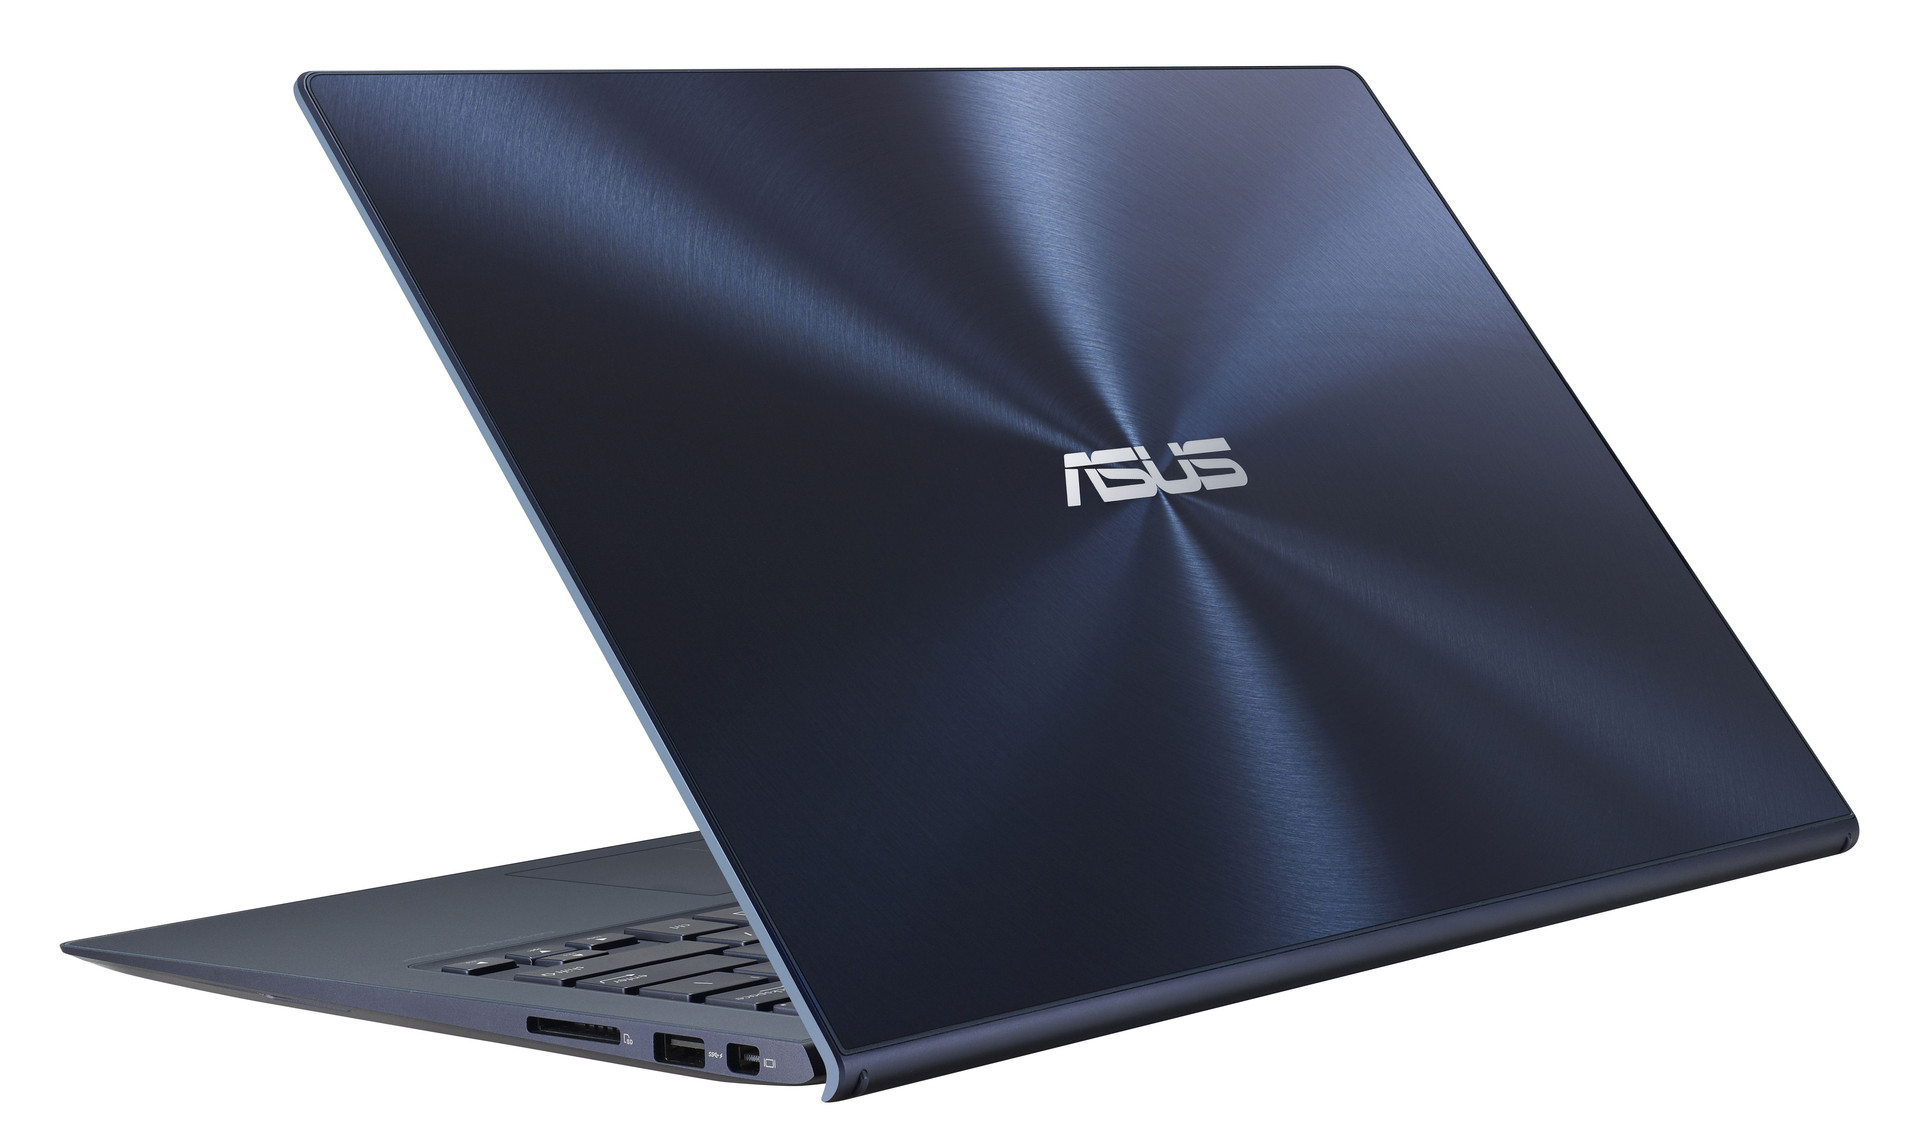 ASUS ZENBOOK UX302LA NVIDIA GRAPHICS TREIBER WINDOWS 8